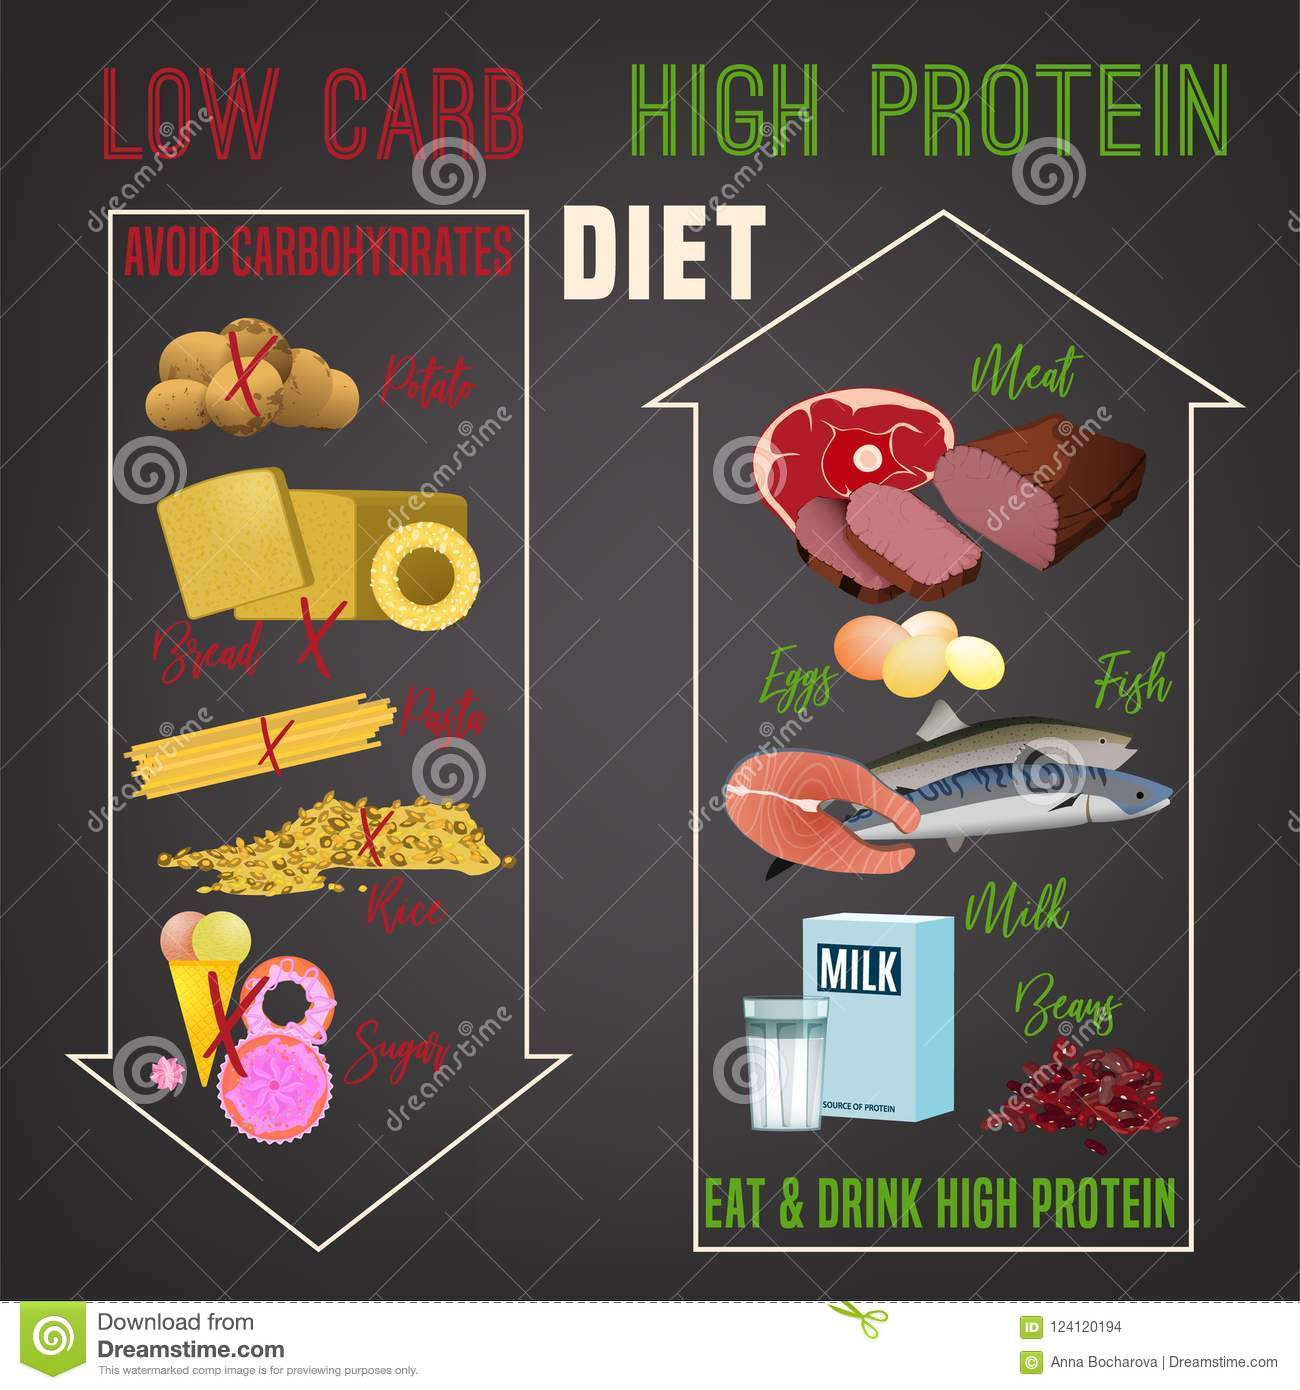 eating high protein diet